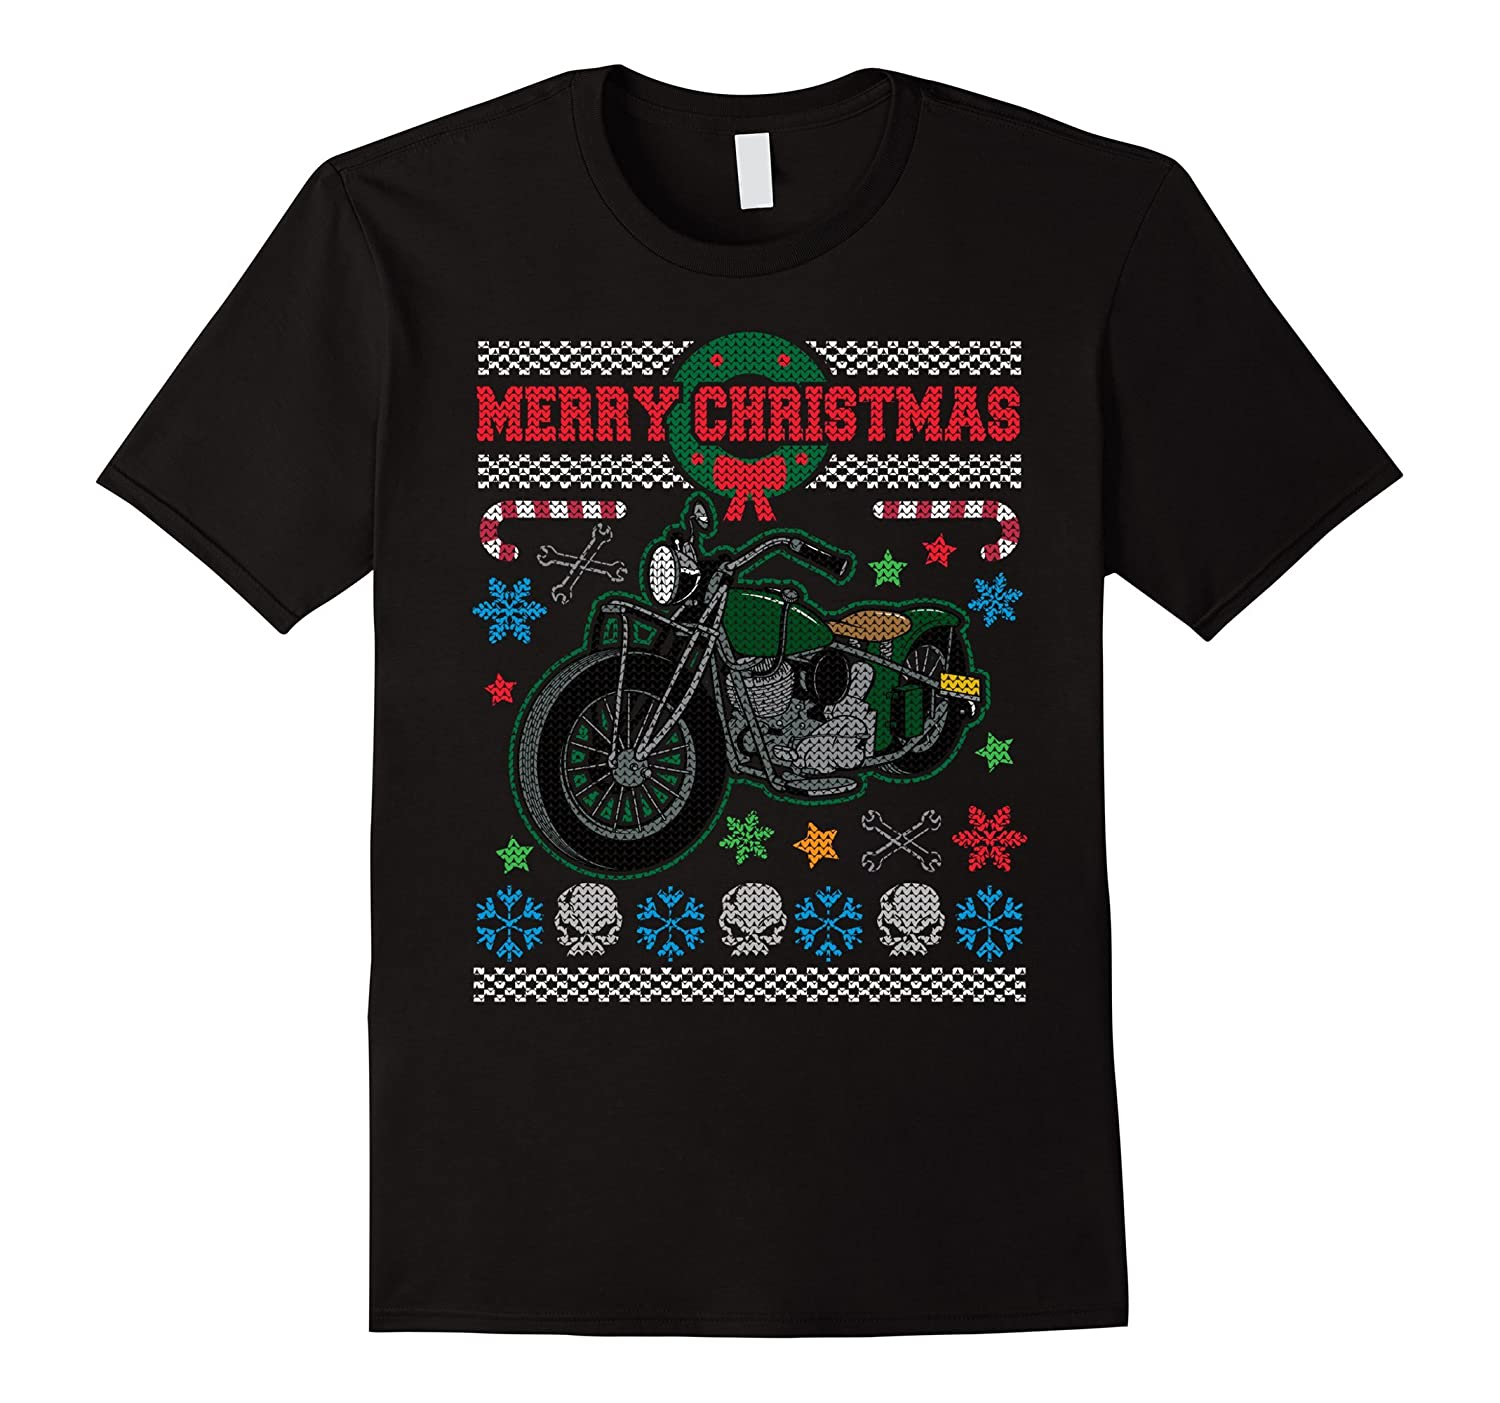 Merry Christmas Vintage Motorcycle Ugly 2 T-shirt